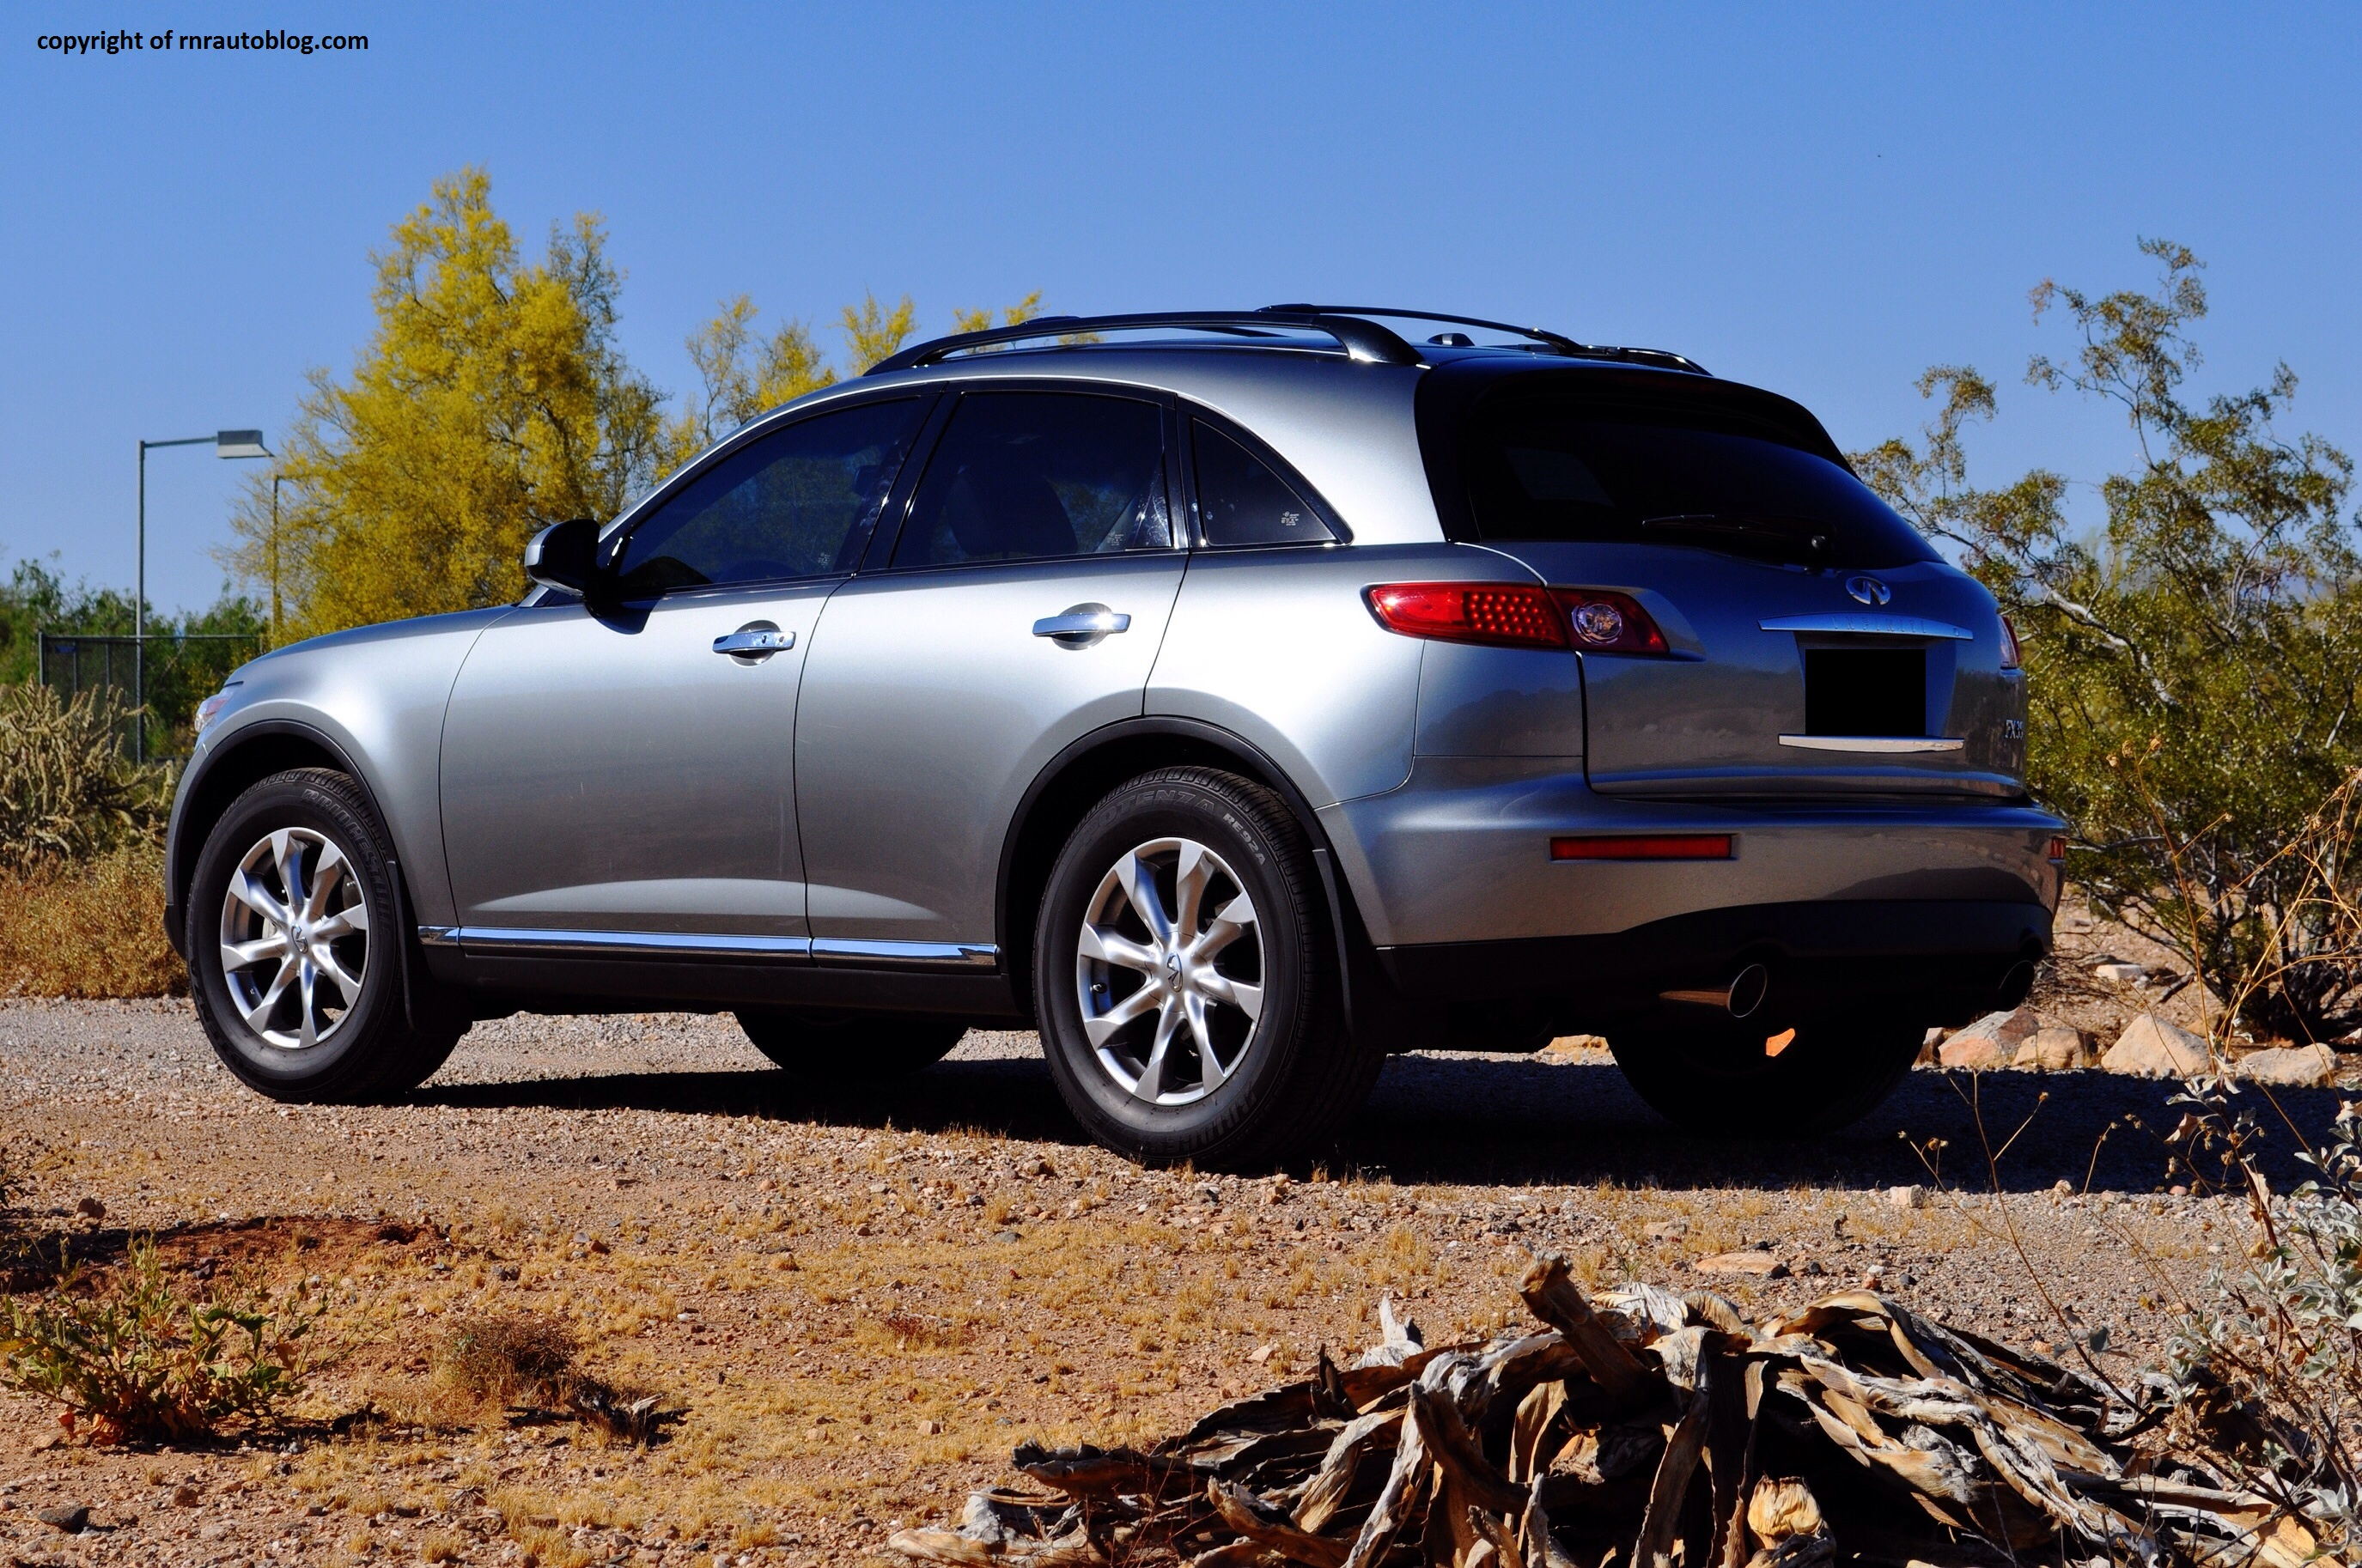 2008 Infiniti FX35 Review | RNR Automotive Blog